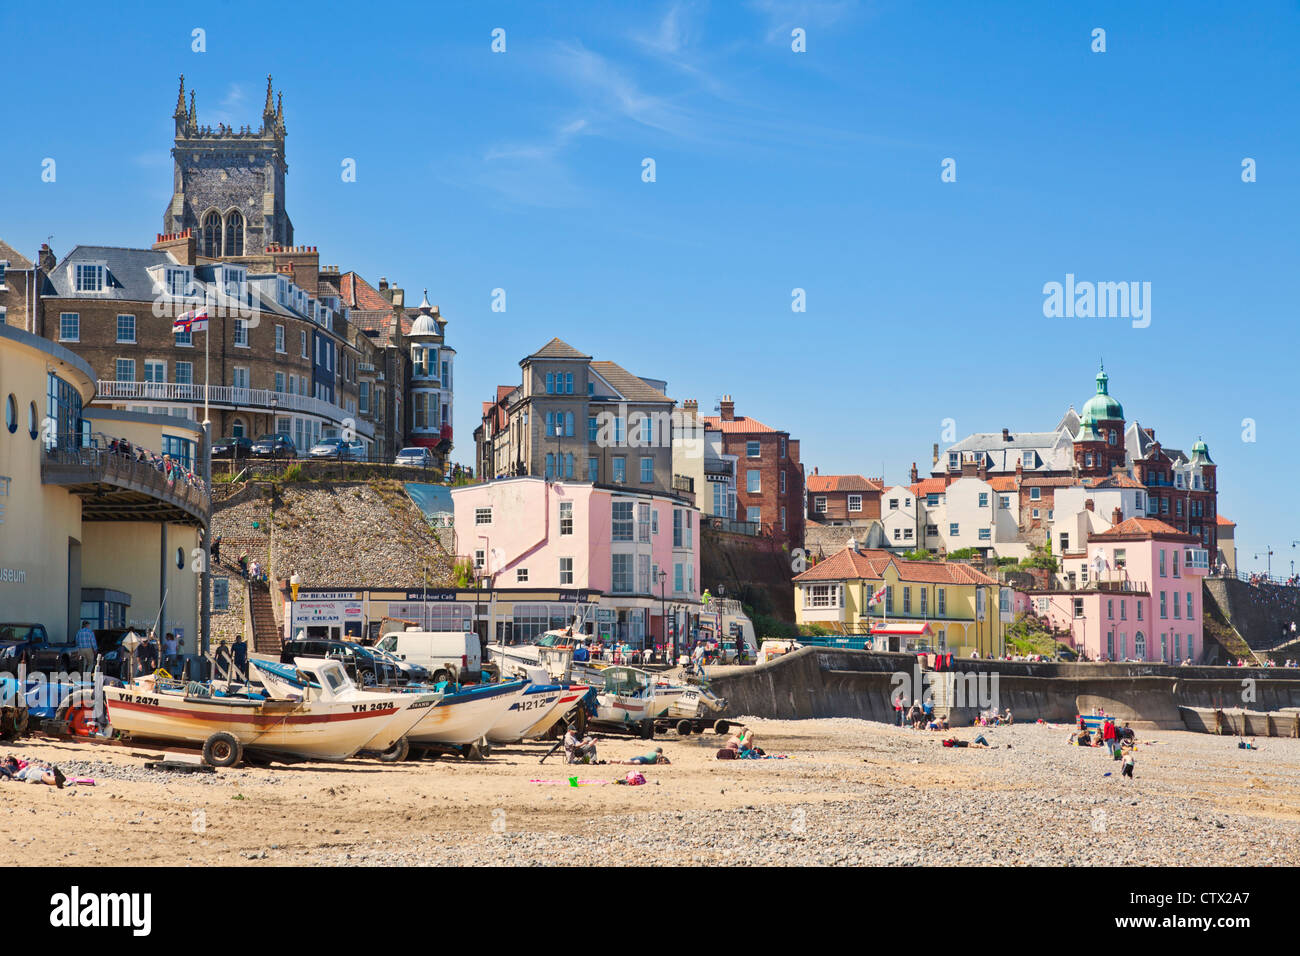 Cromer Norfolk England UK GB EU Europe - Stock Image